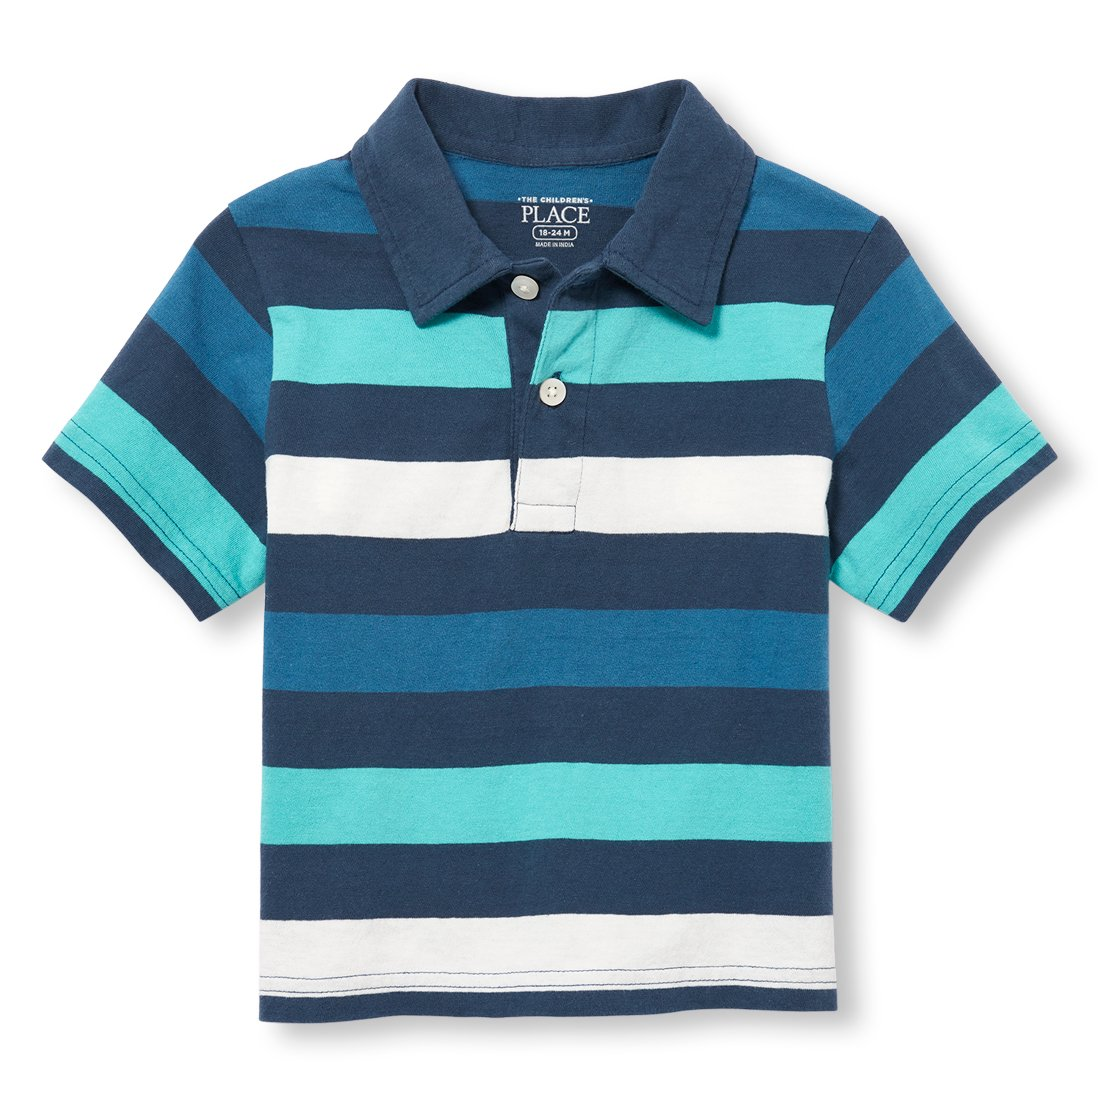 The Children's Place Baby Boys Short Sleeve Striped Polo The Children's Place 2109217